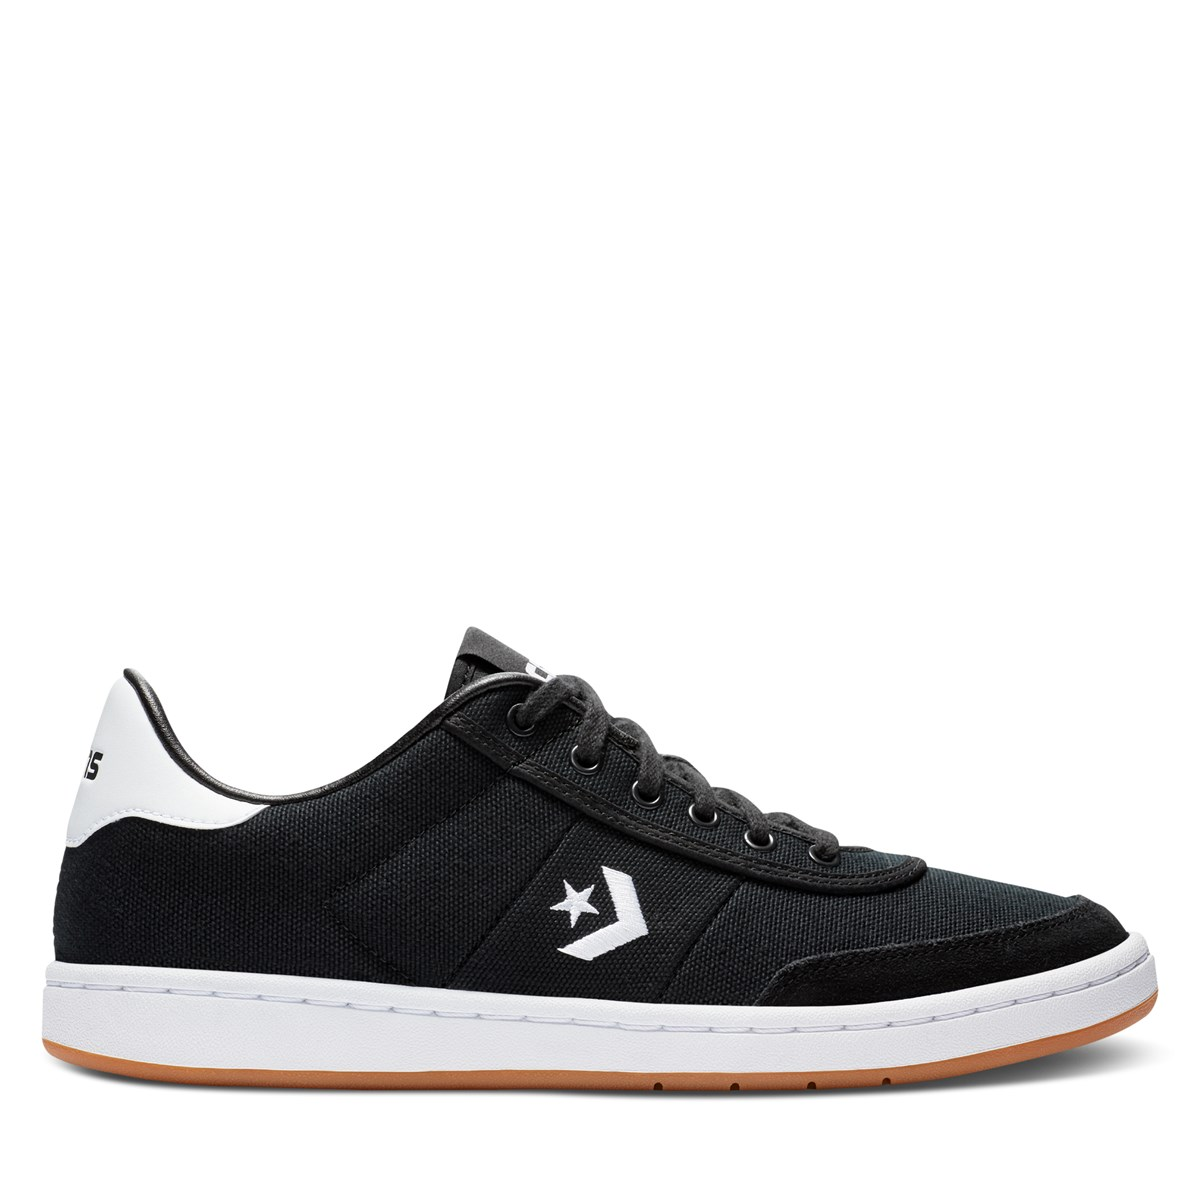 Men's Barcelona Pro Suede Sneakers in Black